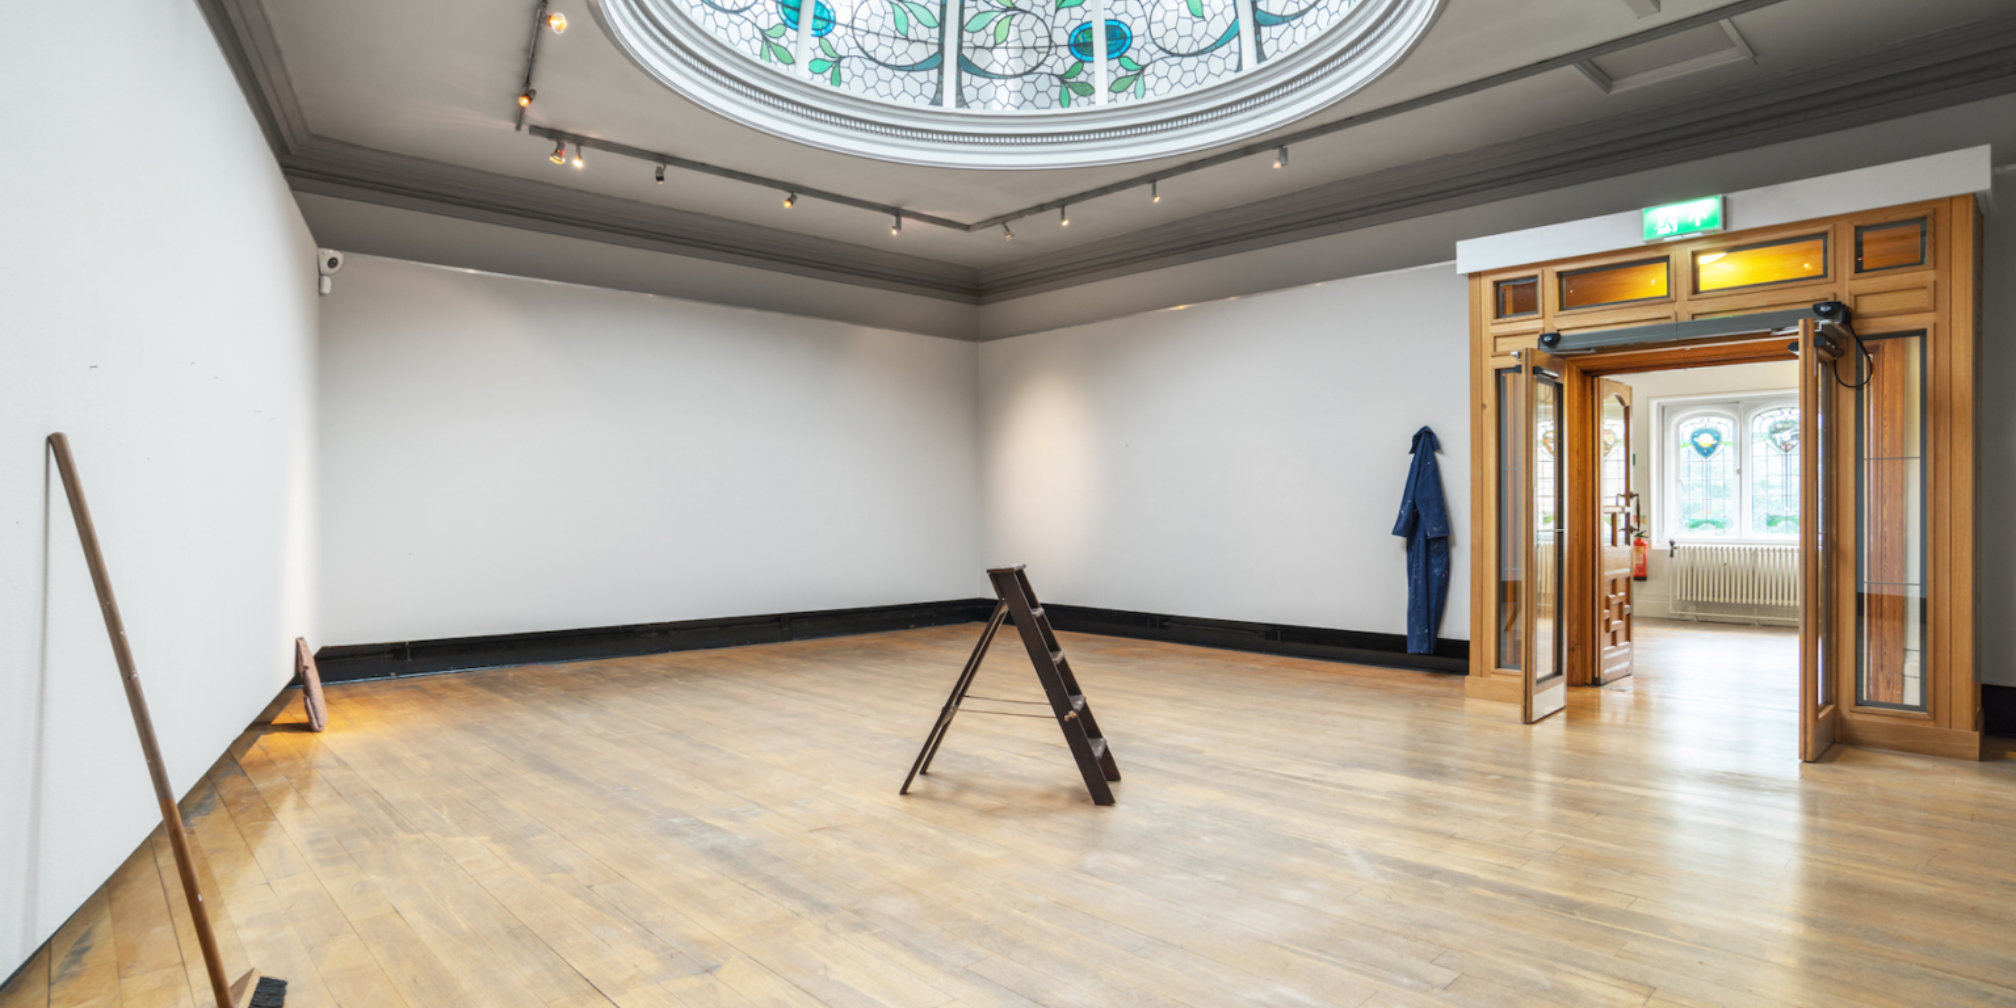 Installation view Susan Collis, When we loved you best of all, 2017, at Touchstones Gallery, Rochdale